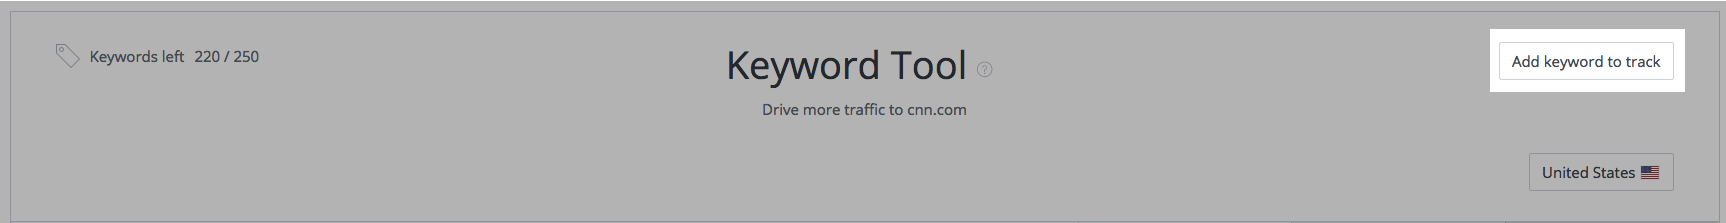 Keyword Tool - Add Keywords